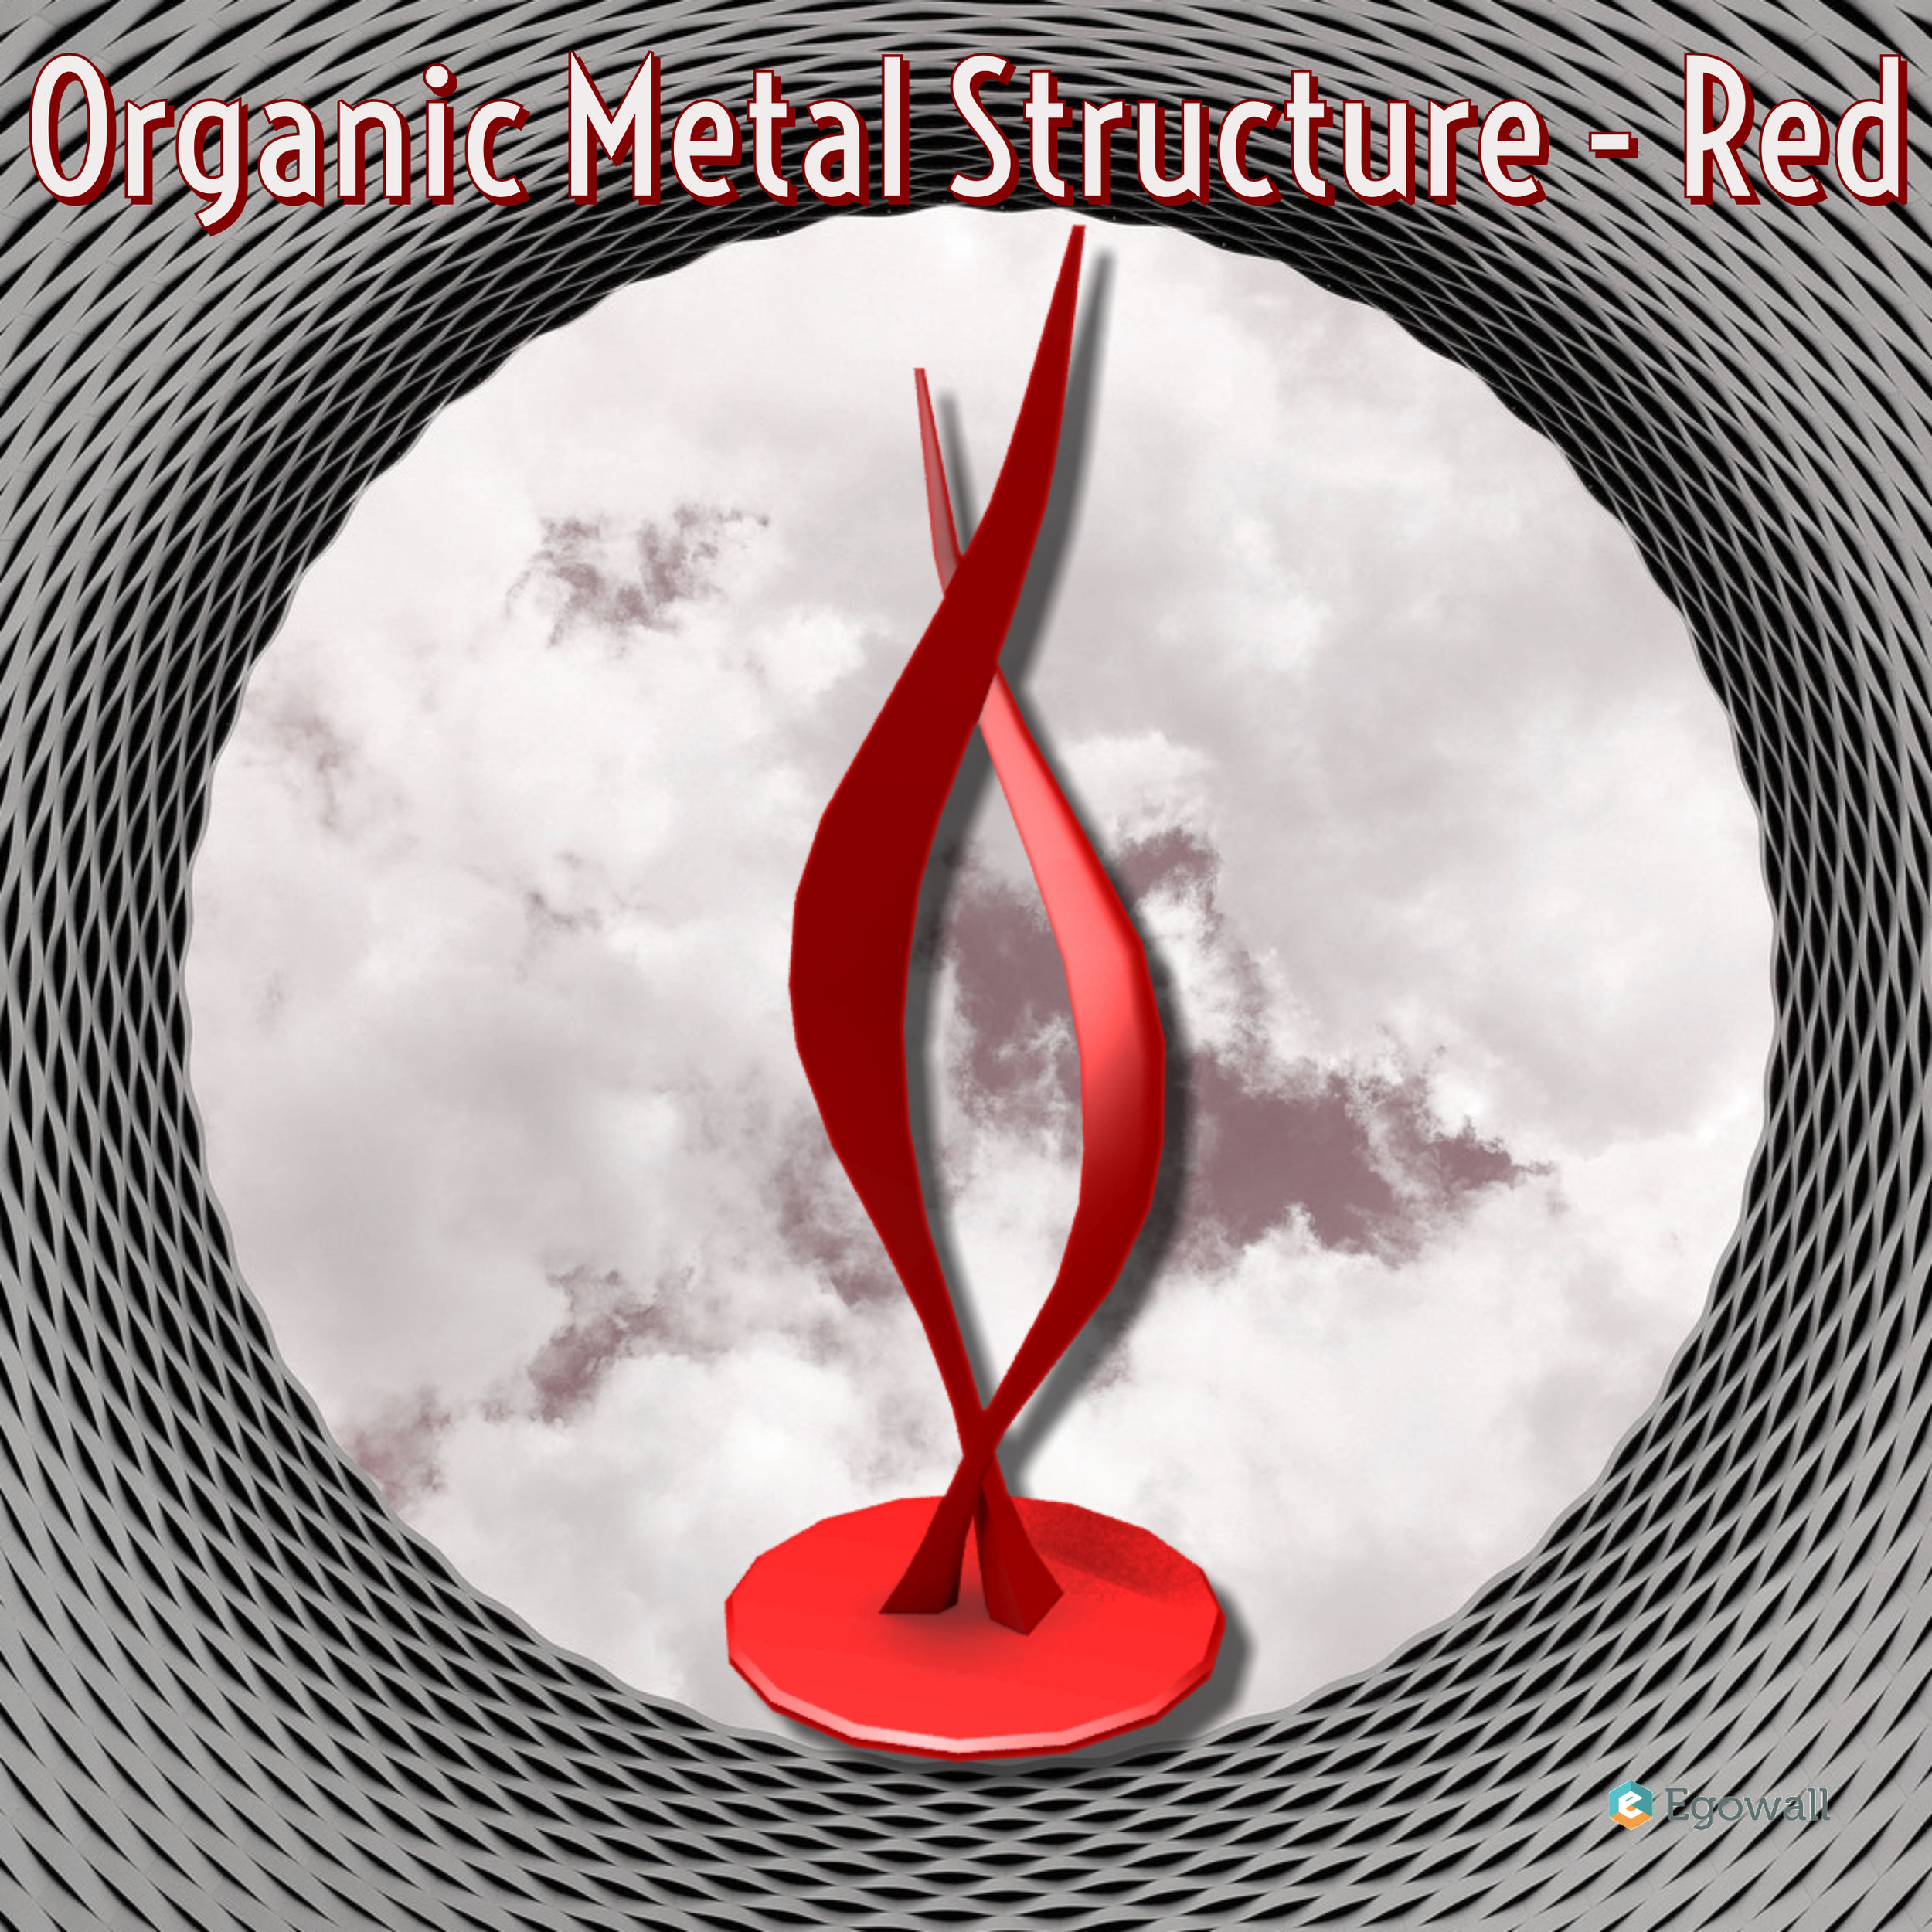 Organic Metal Structure - Red.Instagram.jpg